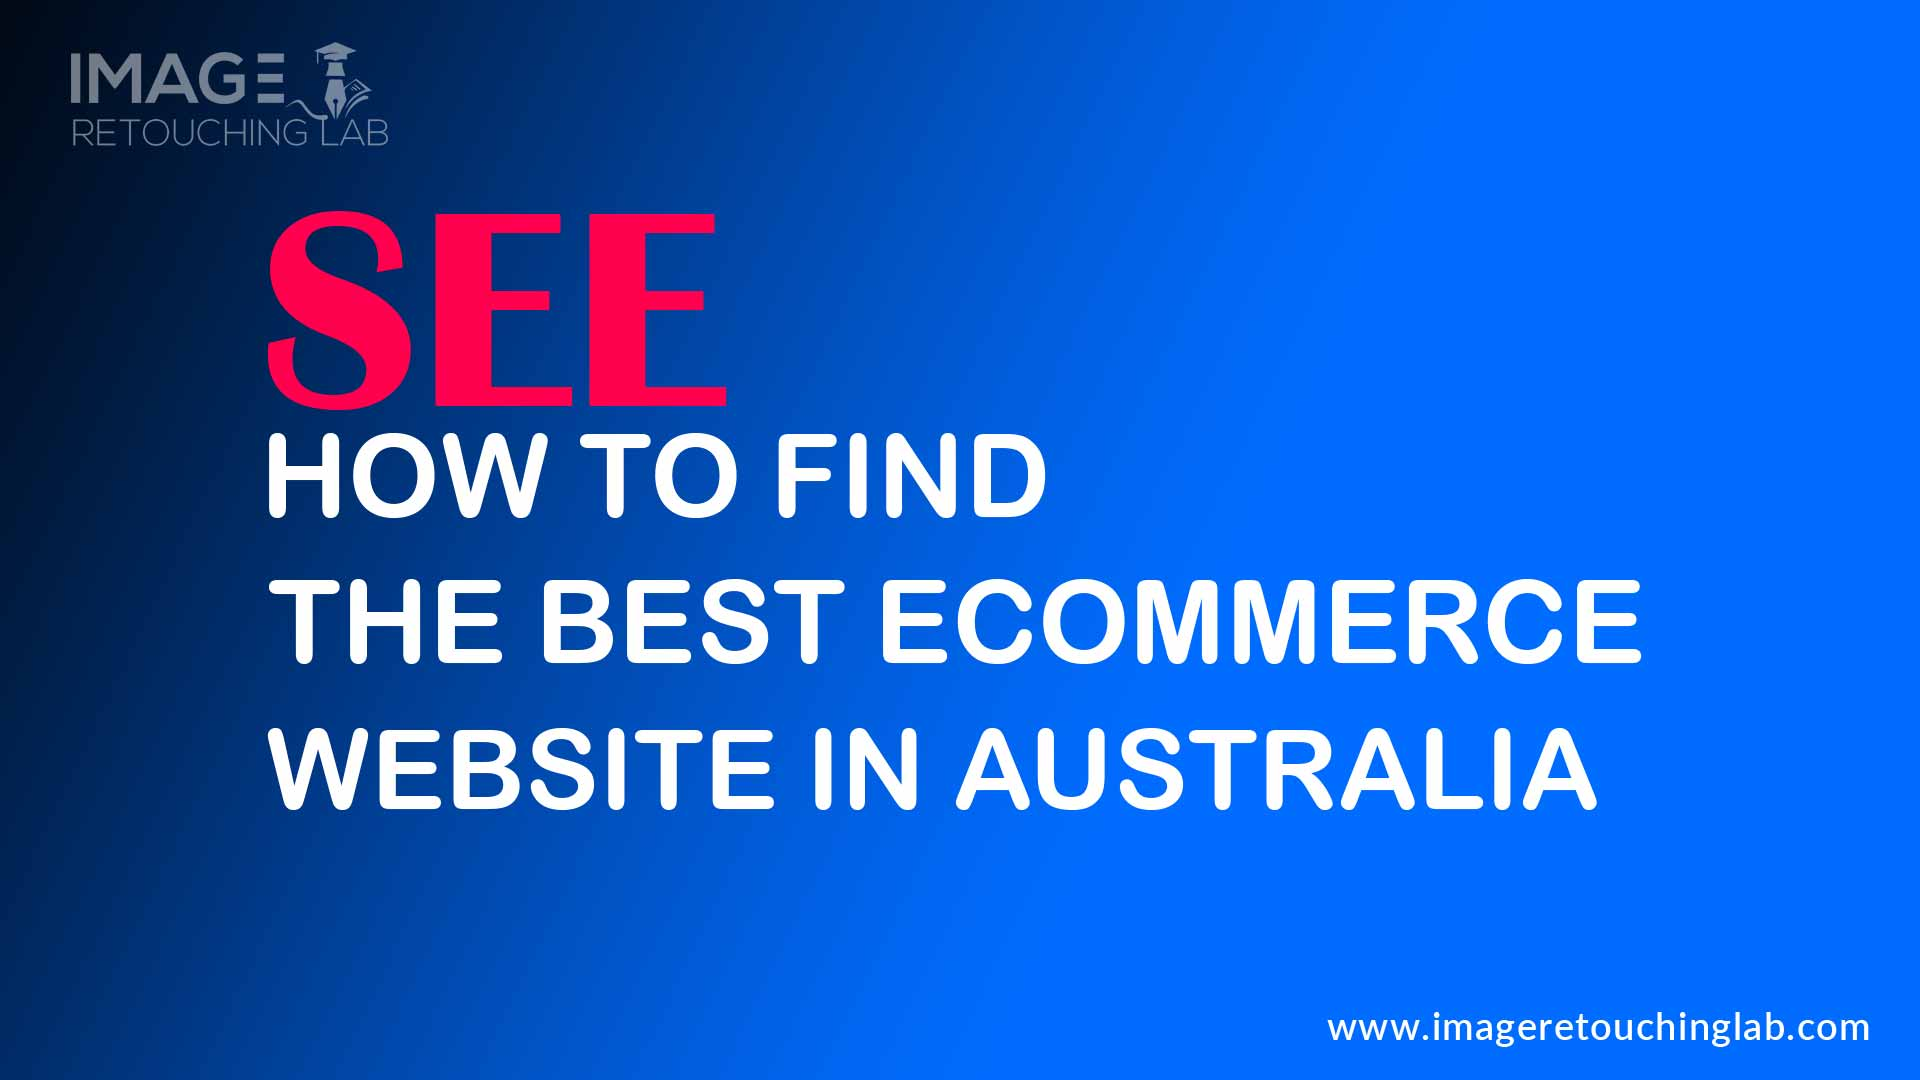 See How to Find The Best Ecommerce Website in Australia